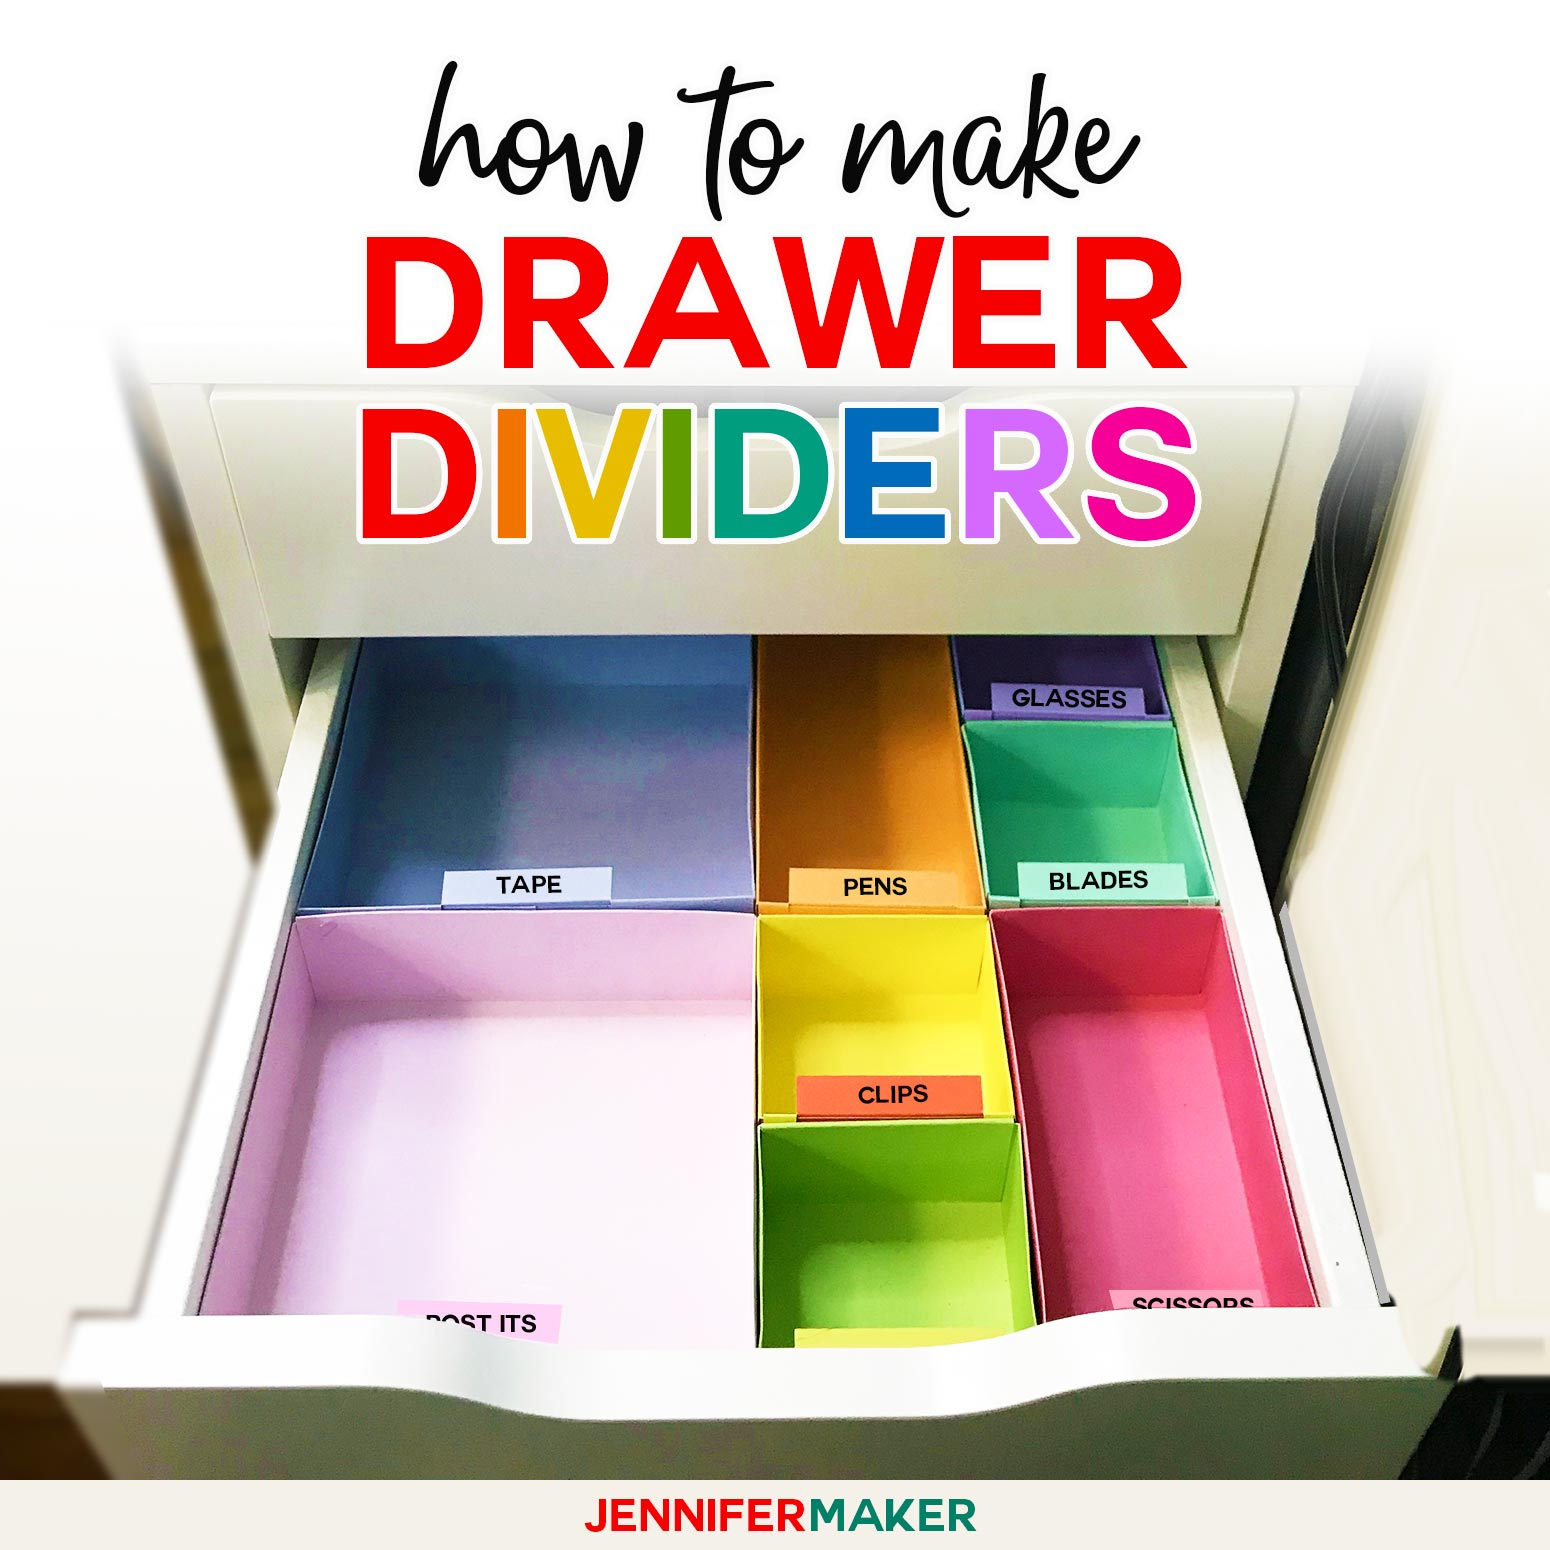 DIY Drawer Dividers: How to Organize Your Drawers